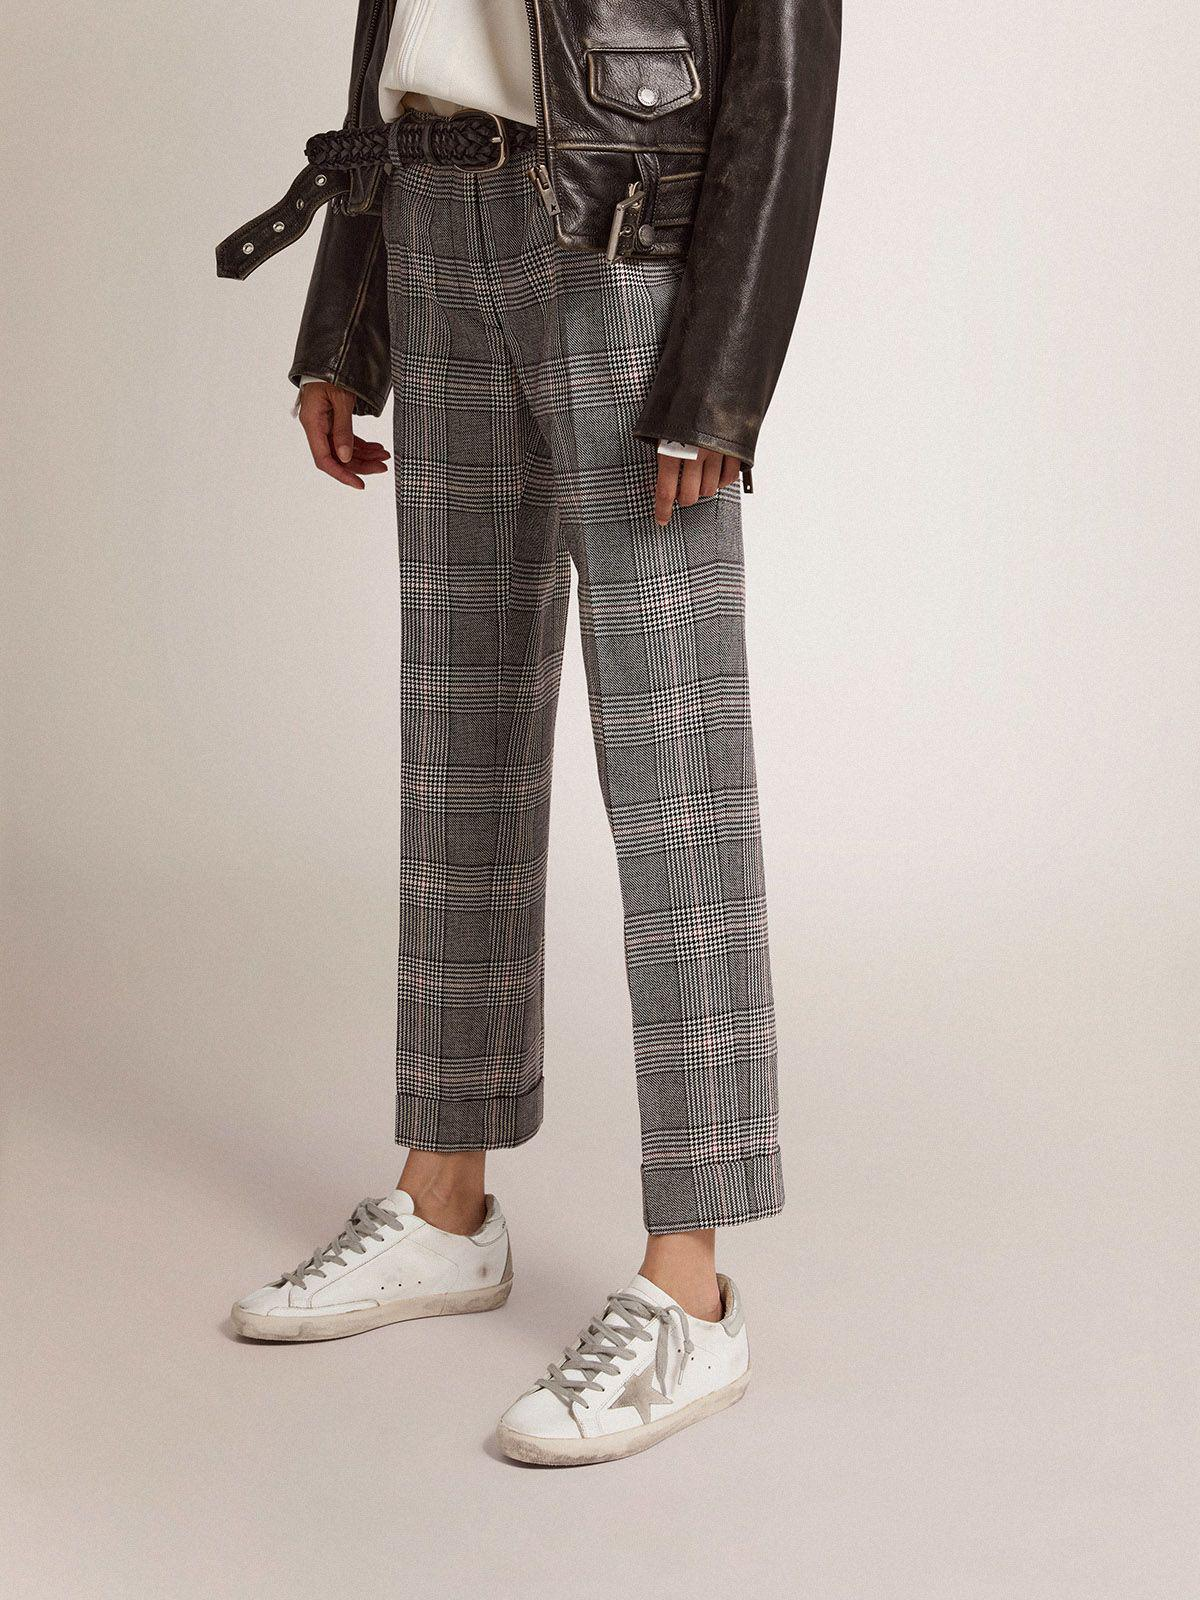 Golden Collection cigarette pants in gray and white Prince of Wales check